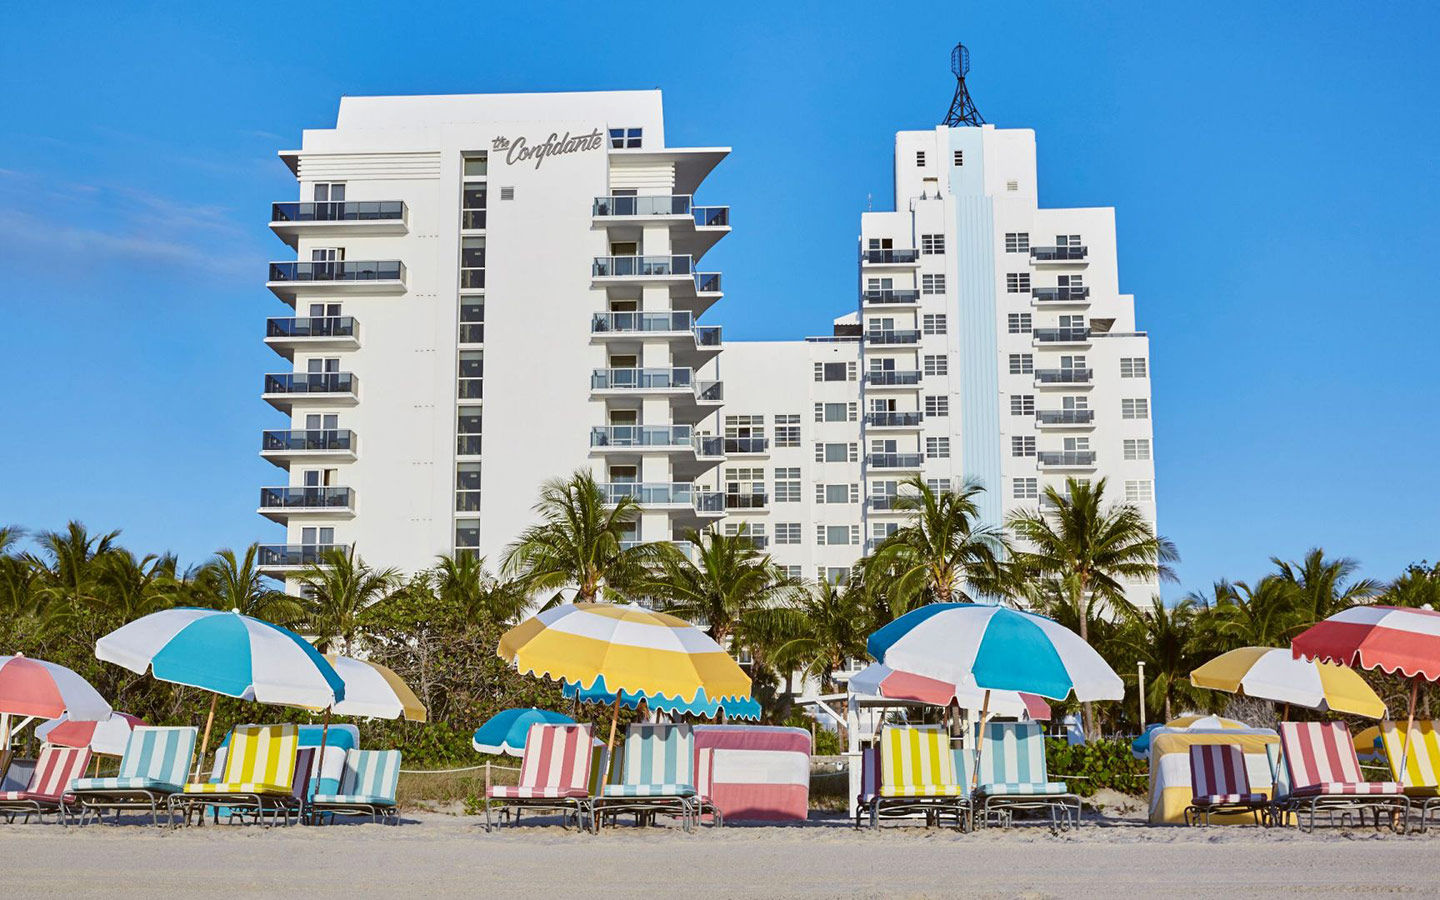 Miami Boutique & Hip Hotels